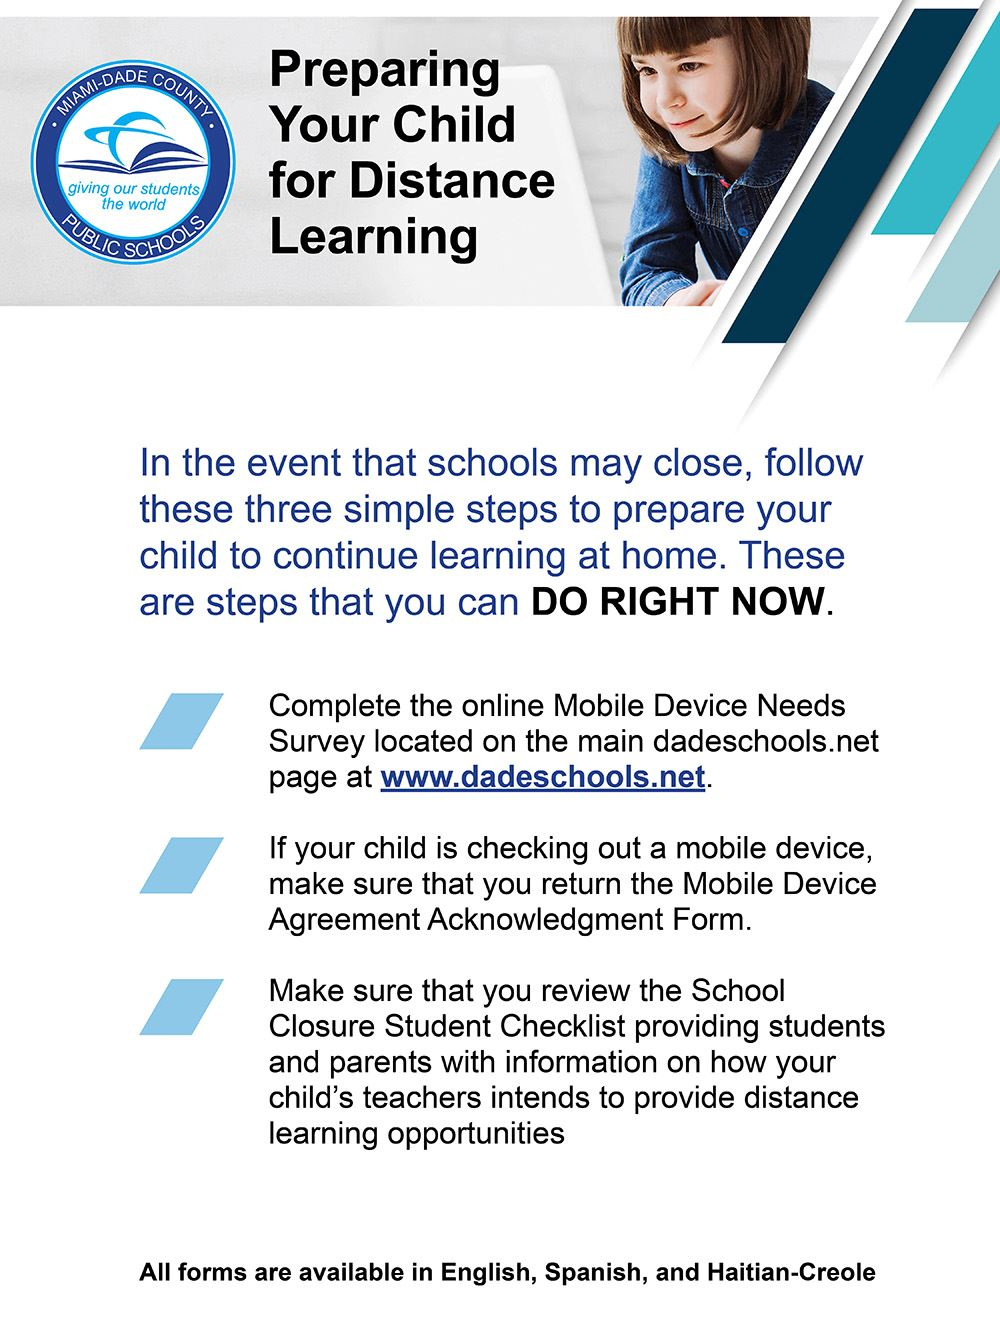 Miami-Dade County Schools Mobile Device Survey due today at www.dadeschools.net